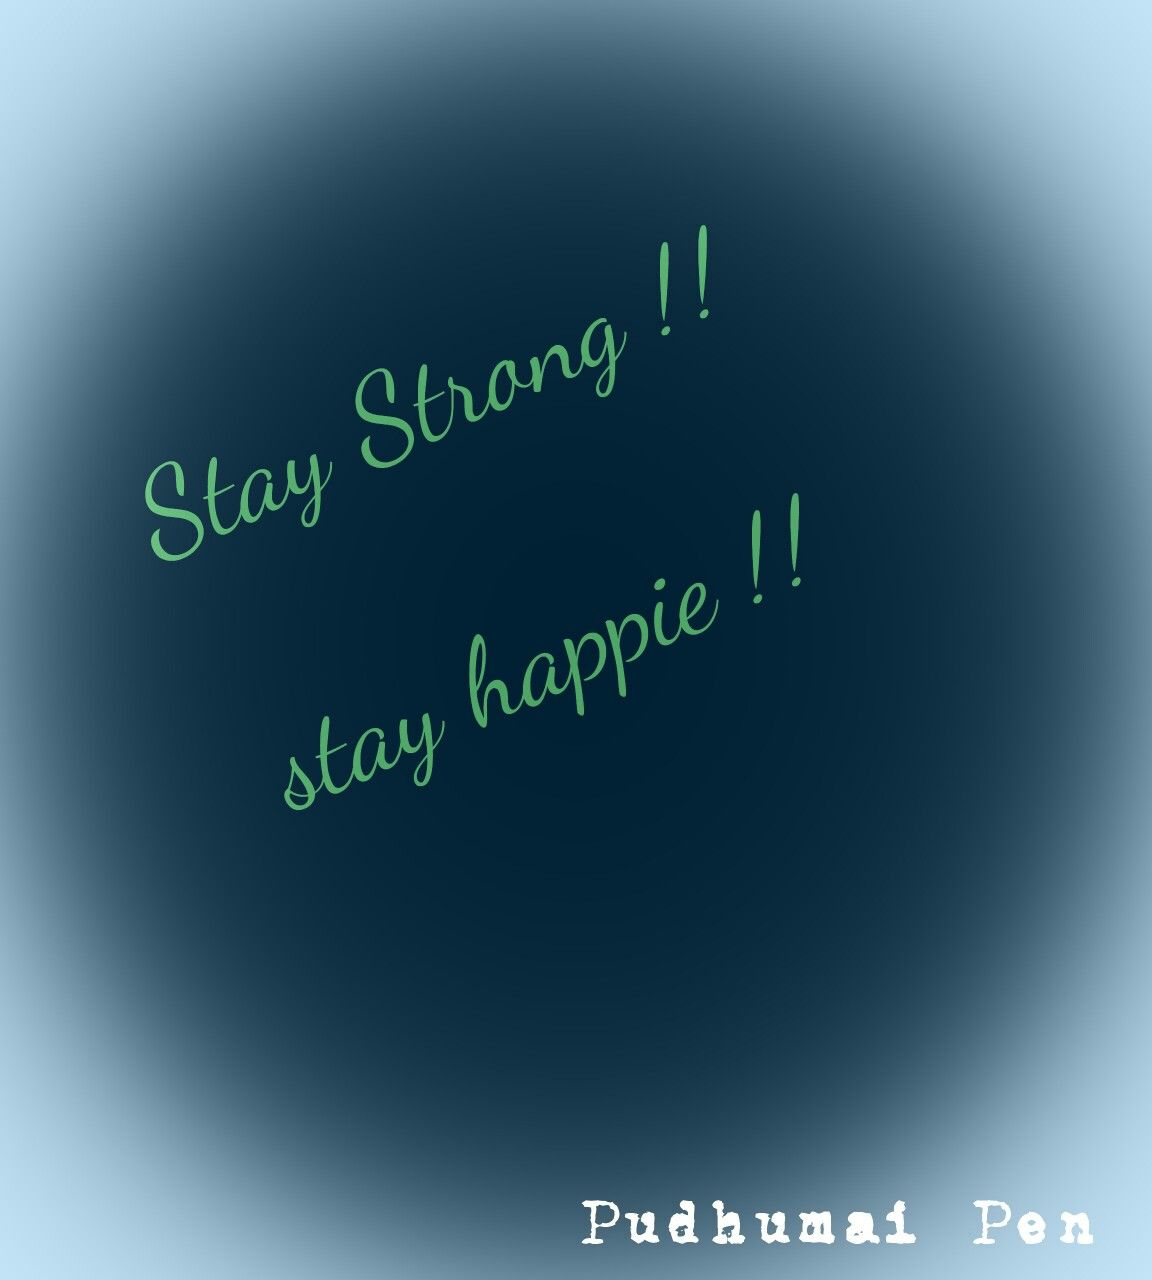 Stay strong stay happie !